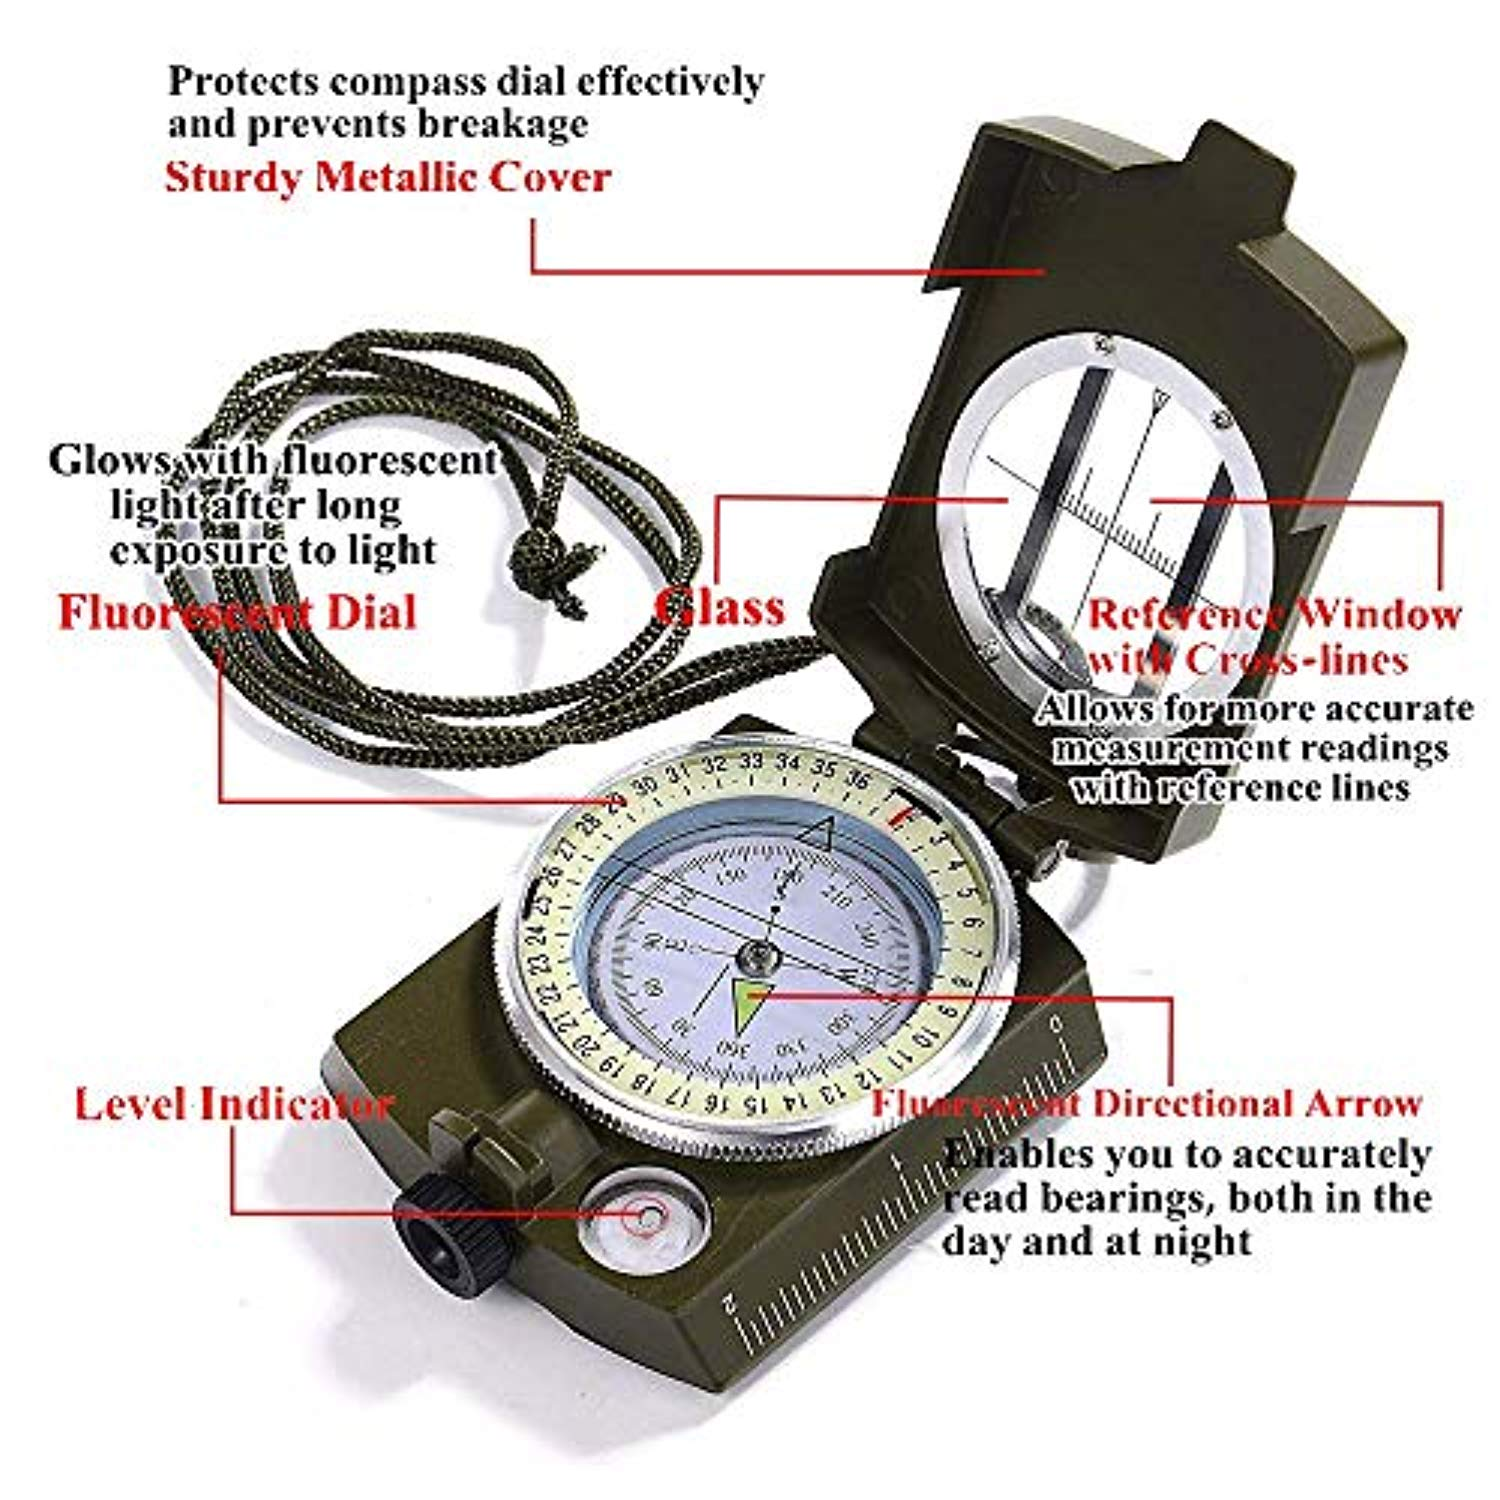 Multifunctional Military Lensatic Tactical Compass Professional Sighting Navigation Compasses Measurer Distance Positioning Waterproof Shakeproof for Hiking Camping Motoring with Carrying Pouch